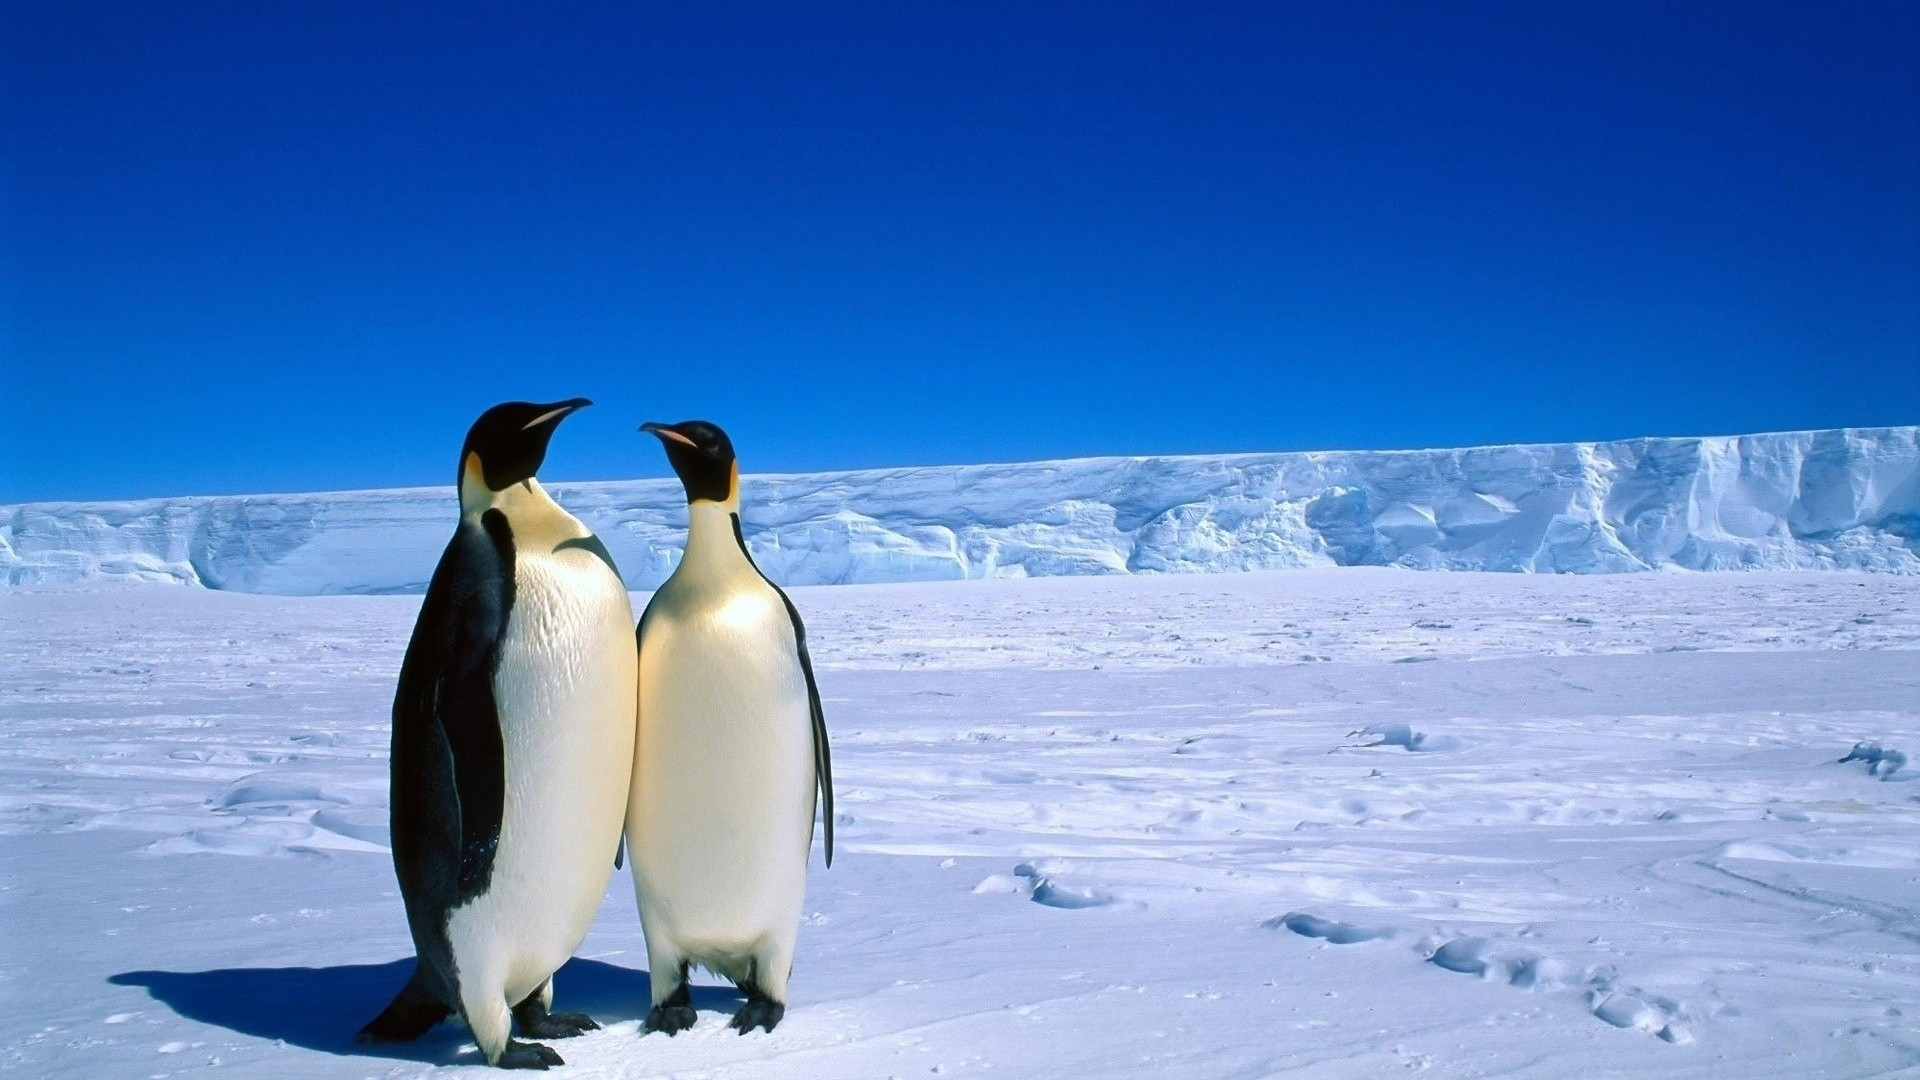 Antarctica wallpaper download